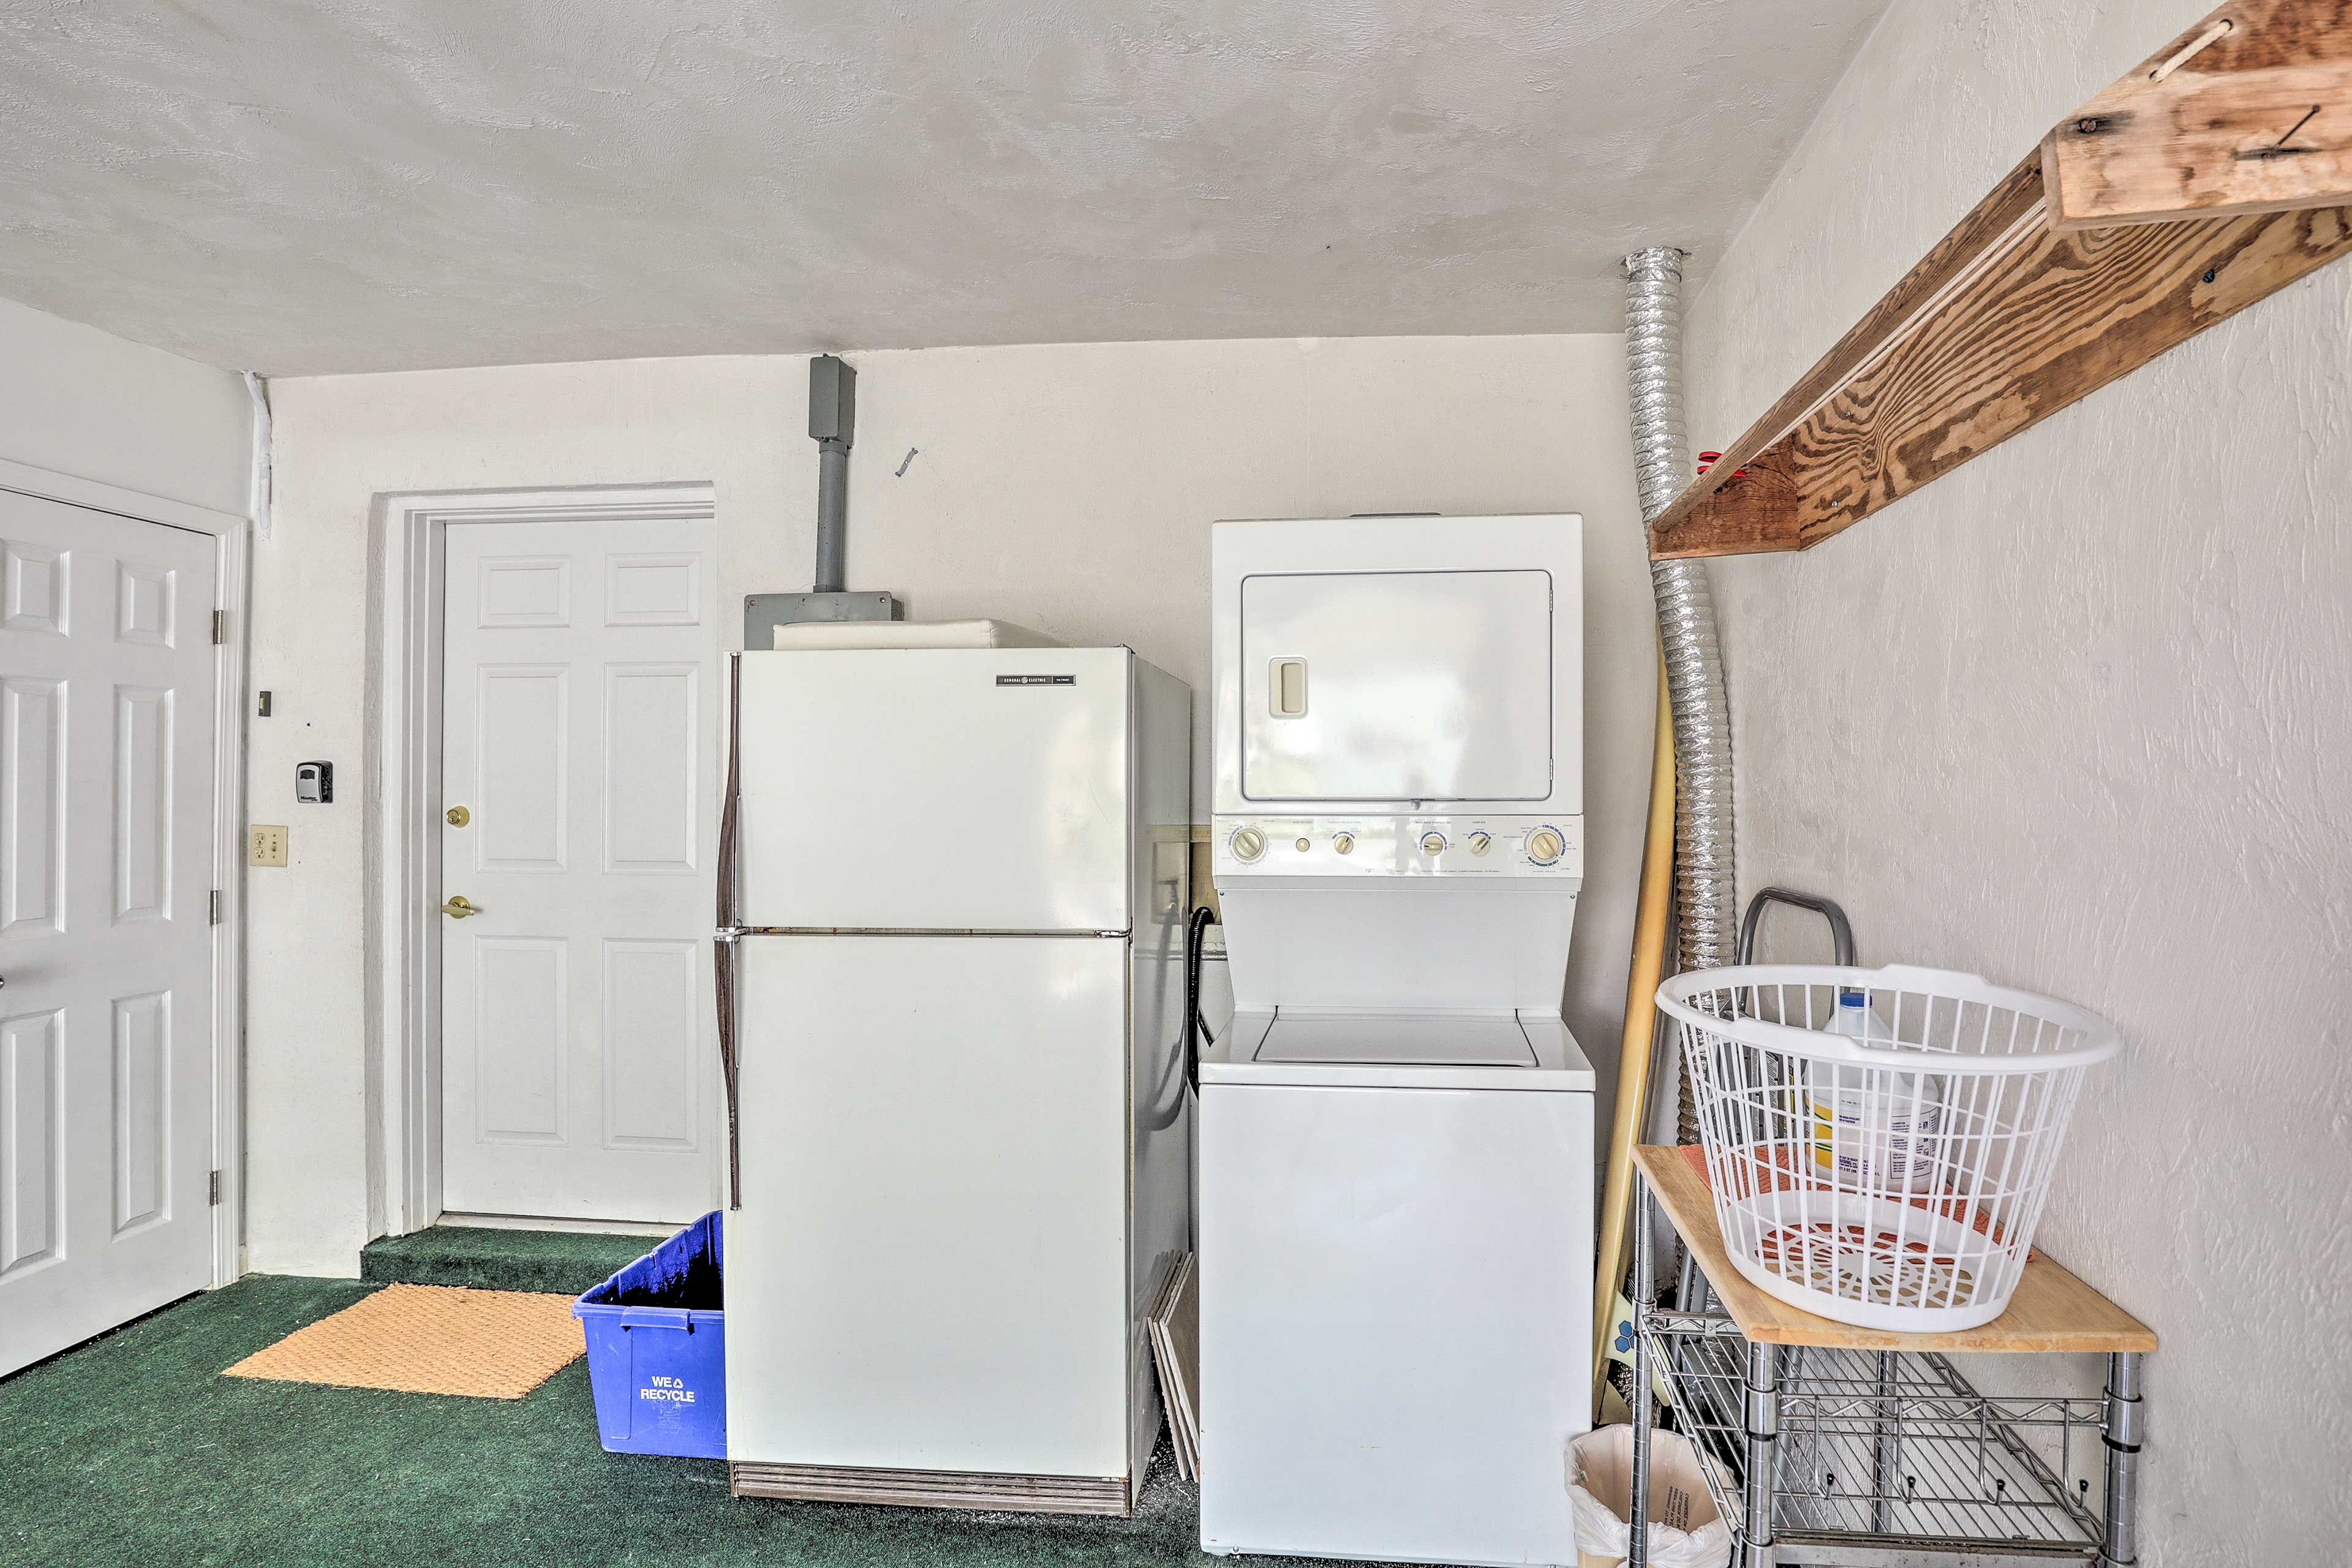 You'll find a second refrigerator & the laundry machines also in the garage.